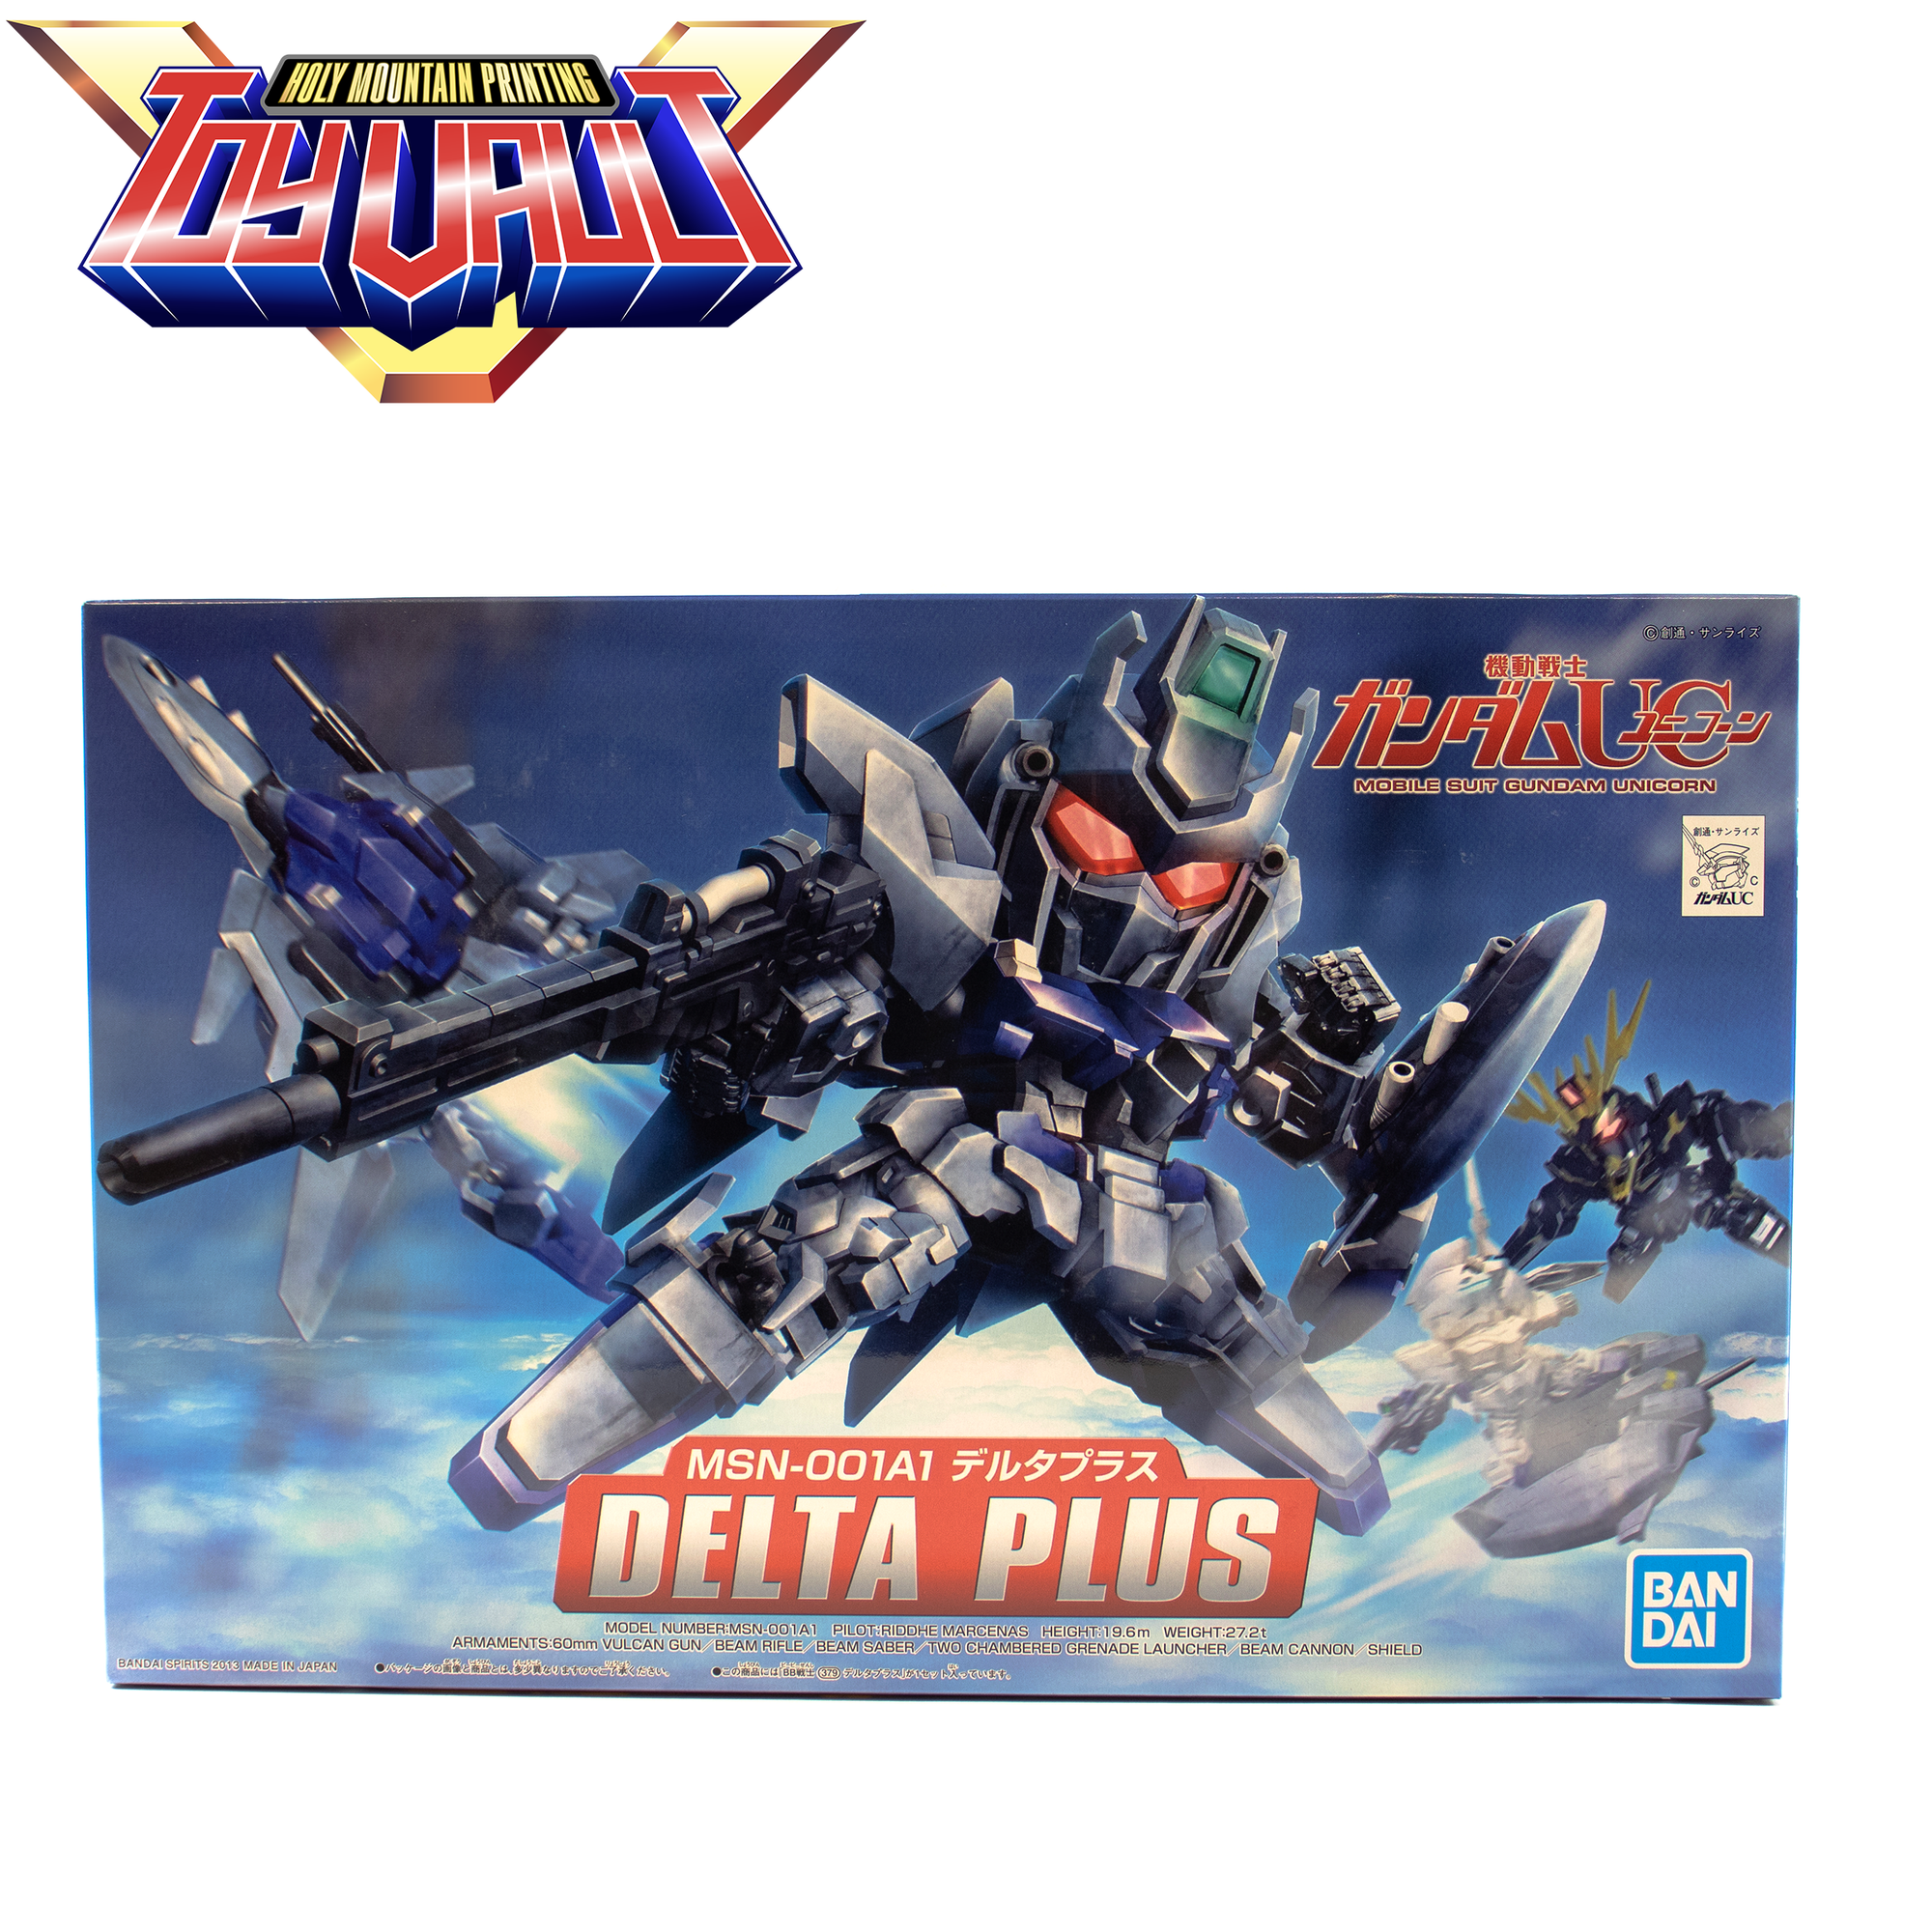 BANDAI - BB SD SENSHI BB379 DELTA PLUS - MODEL KIT